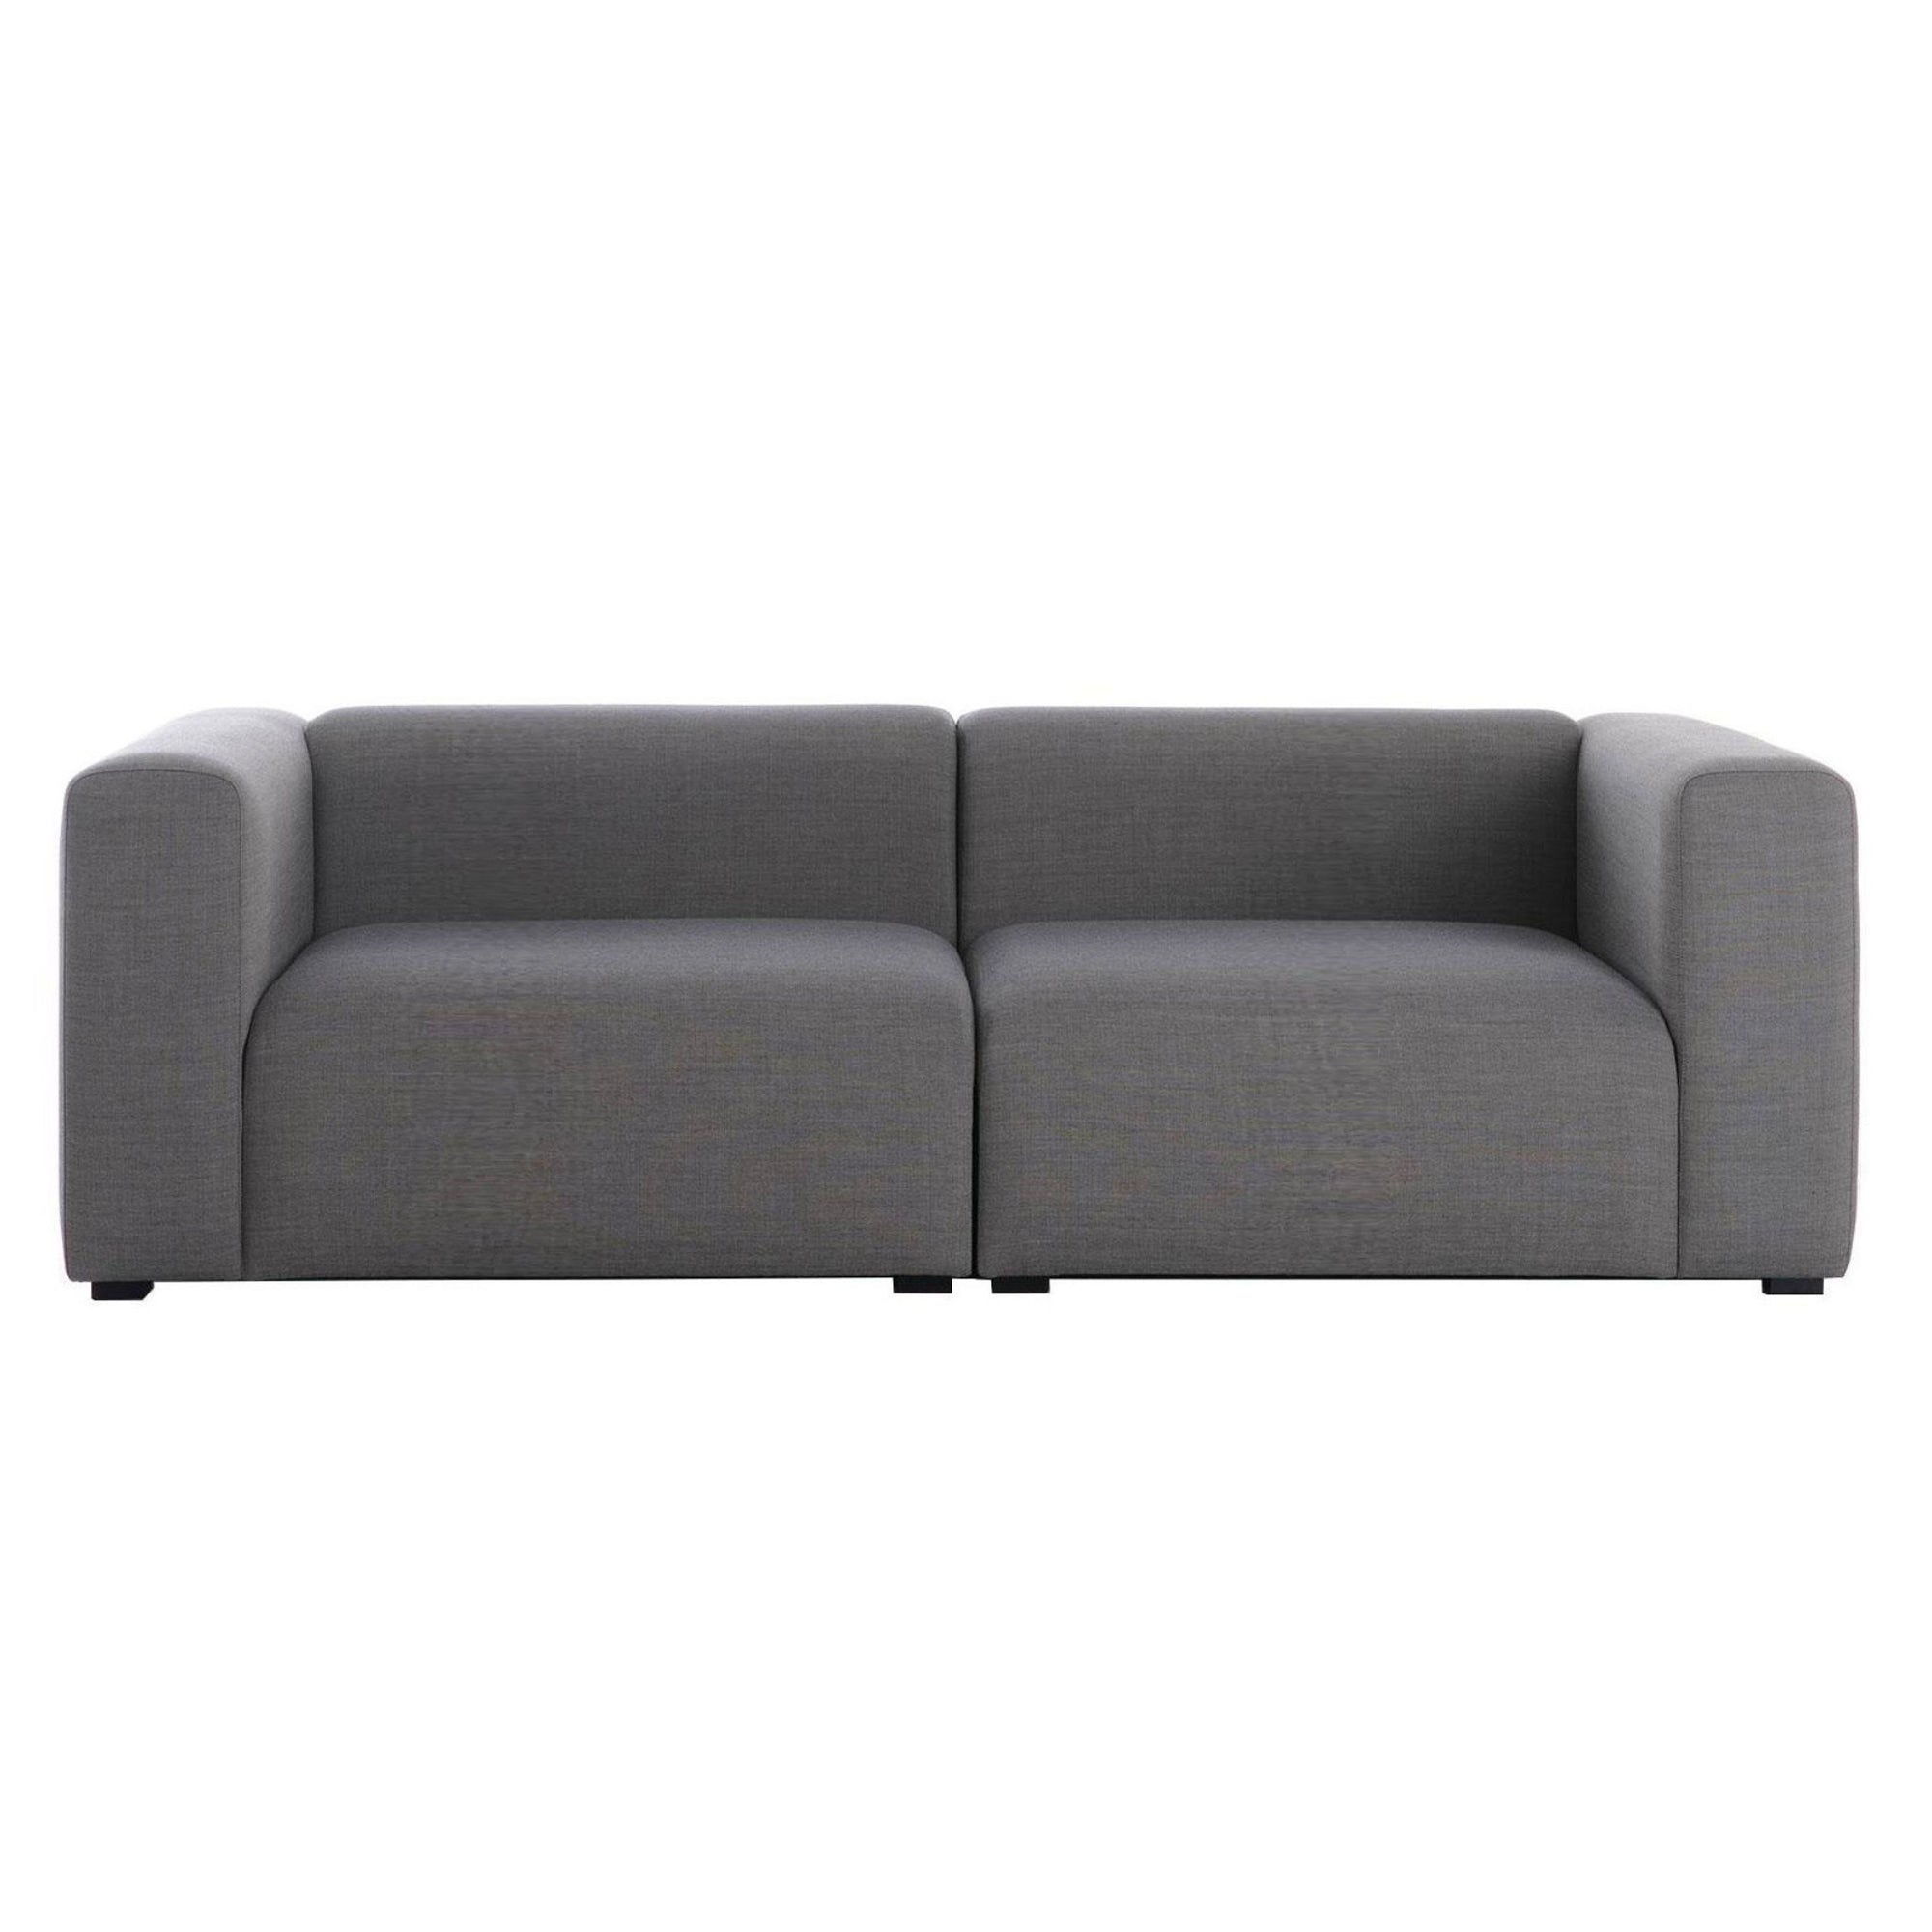 Hay Mags 2.5 seater sofa, remix 133